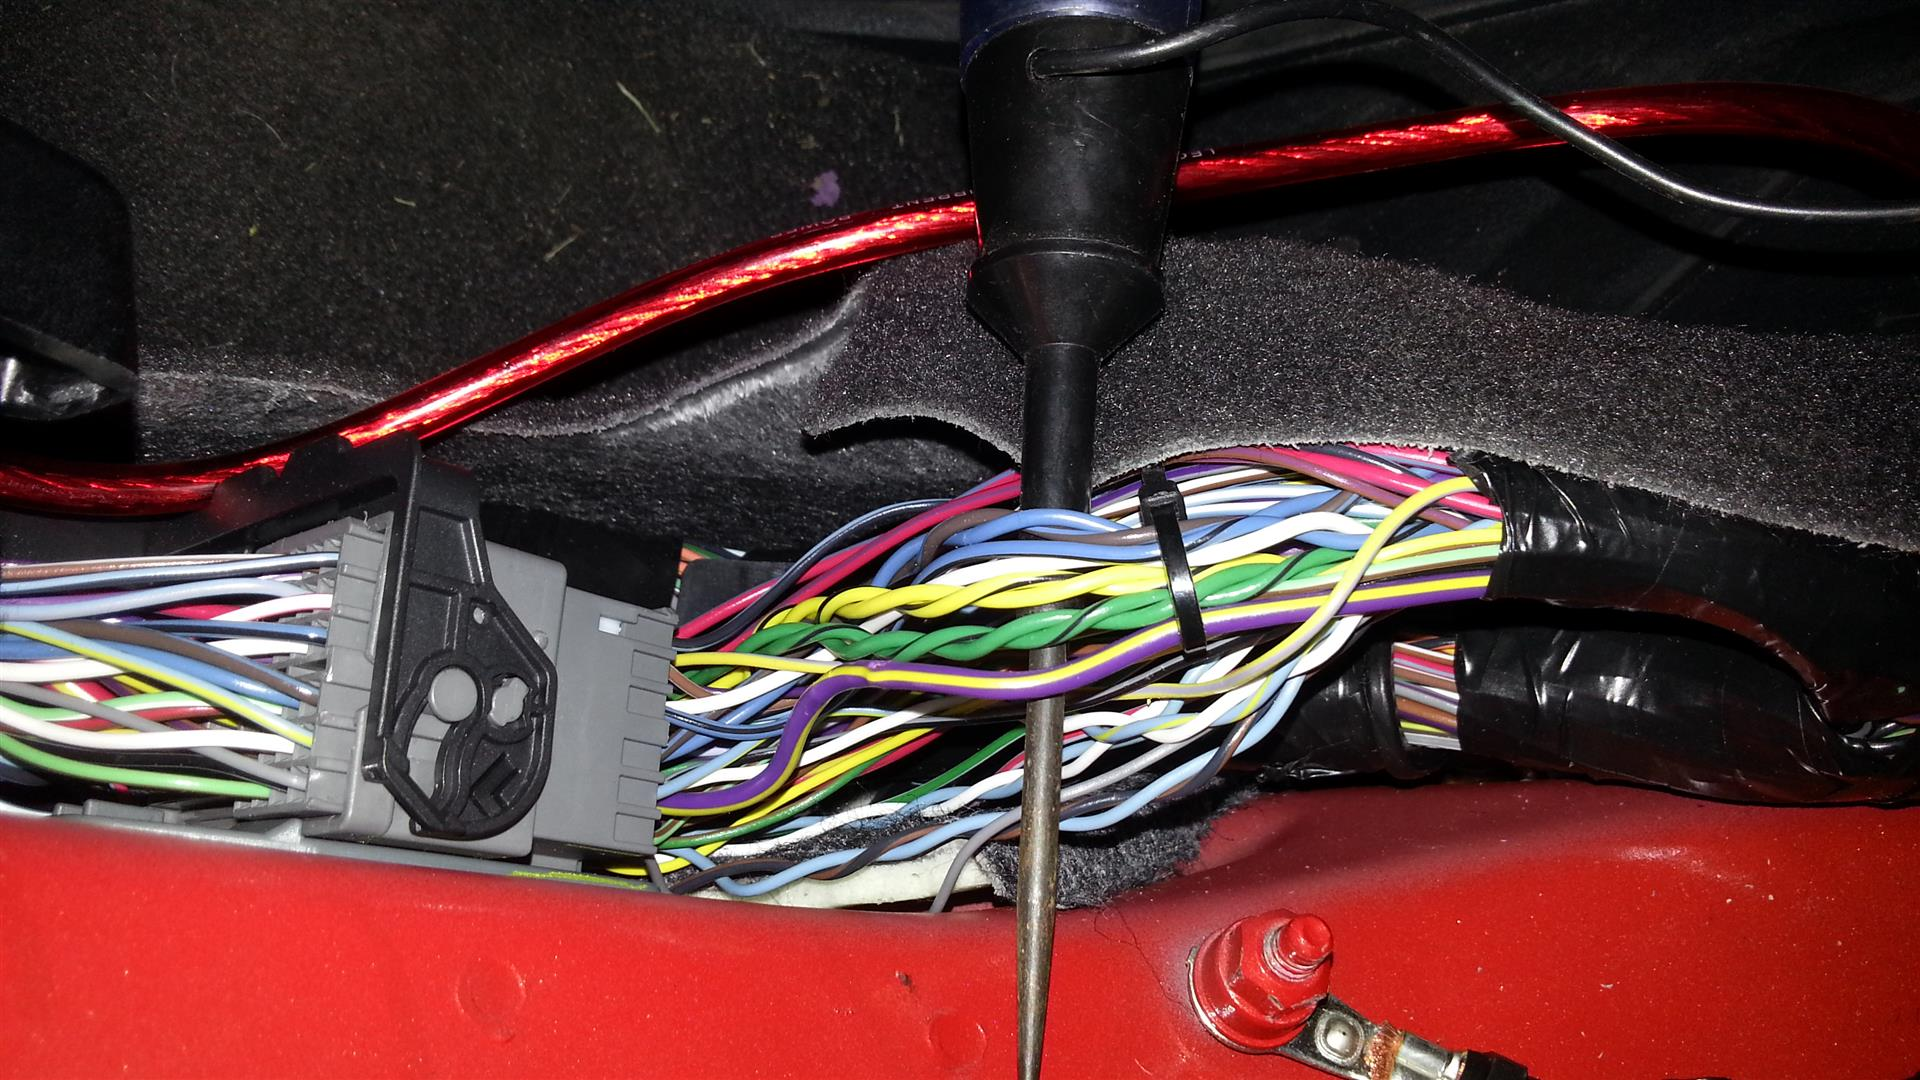 sonicstereo09 speaker wire color codes chevy sonic owners forum 2016 chevy cruze speaker wiring diagram at creativeand.co